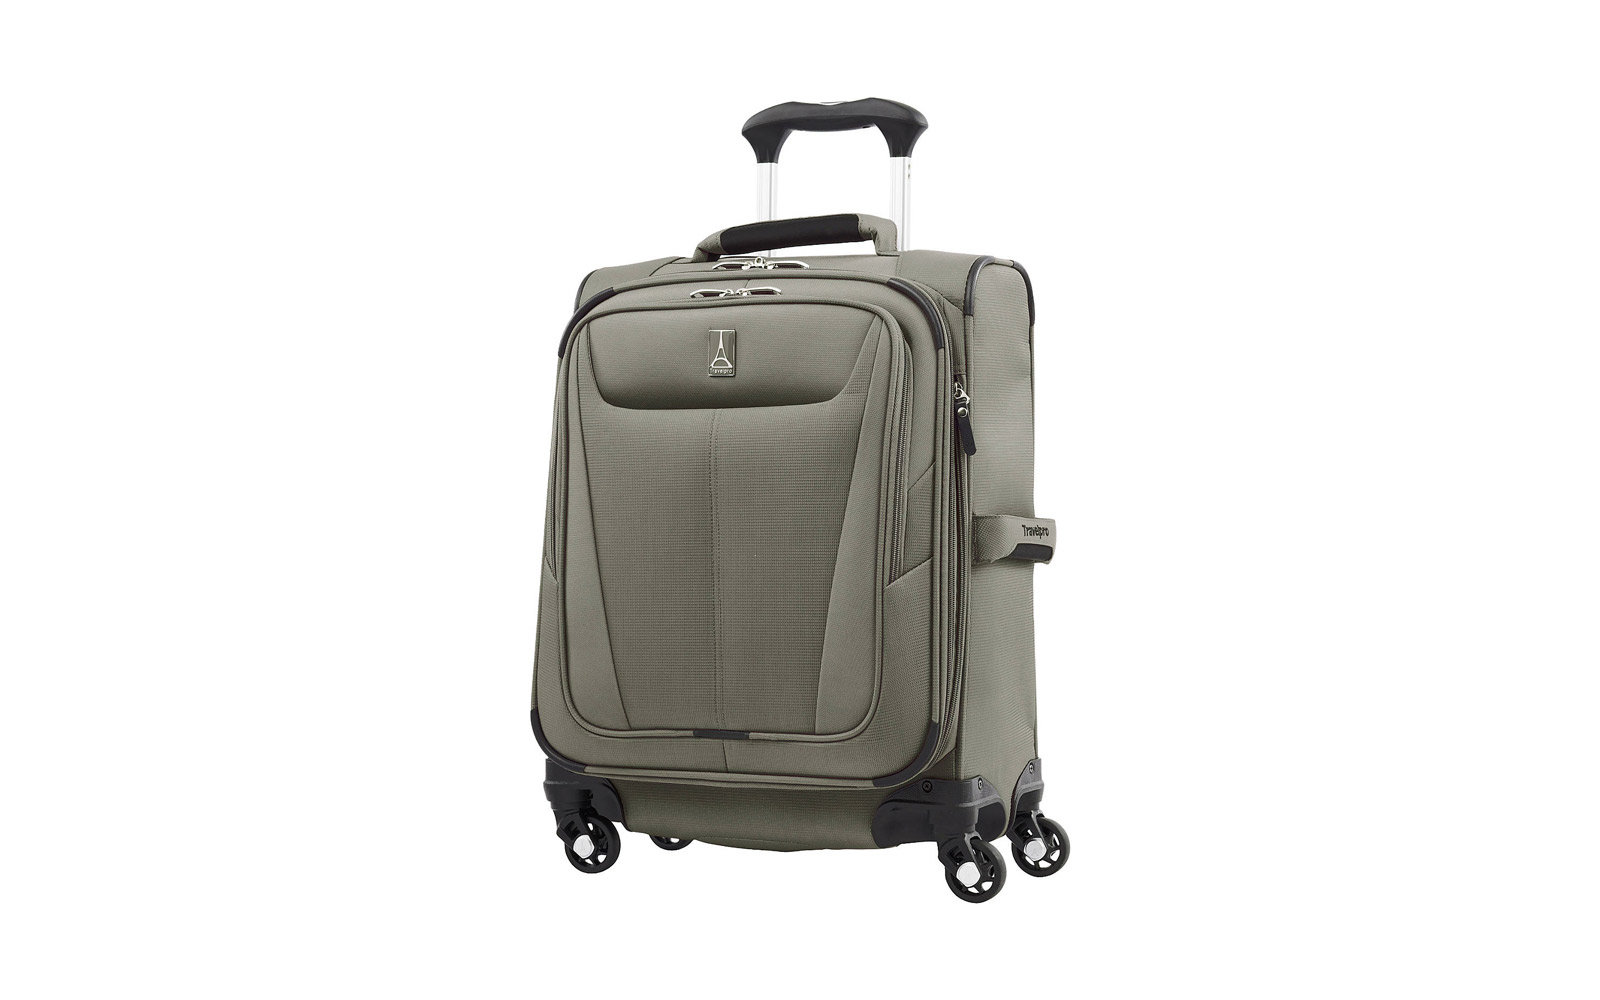 Travelpro Maxlite Spinner Luggage